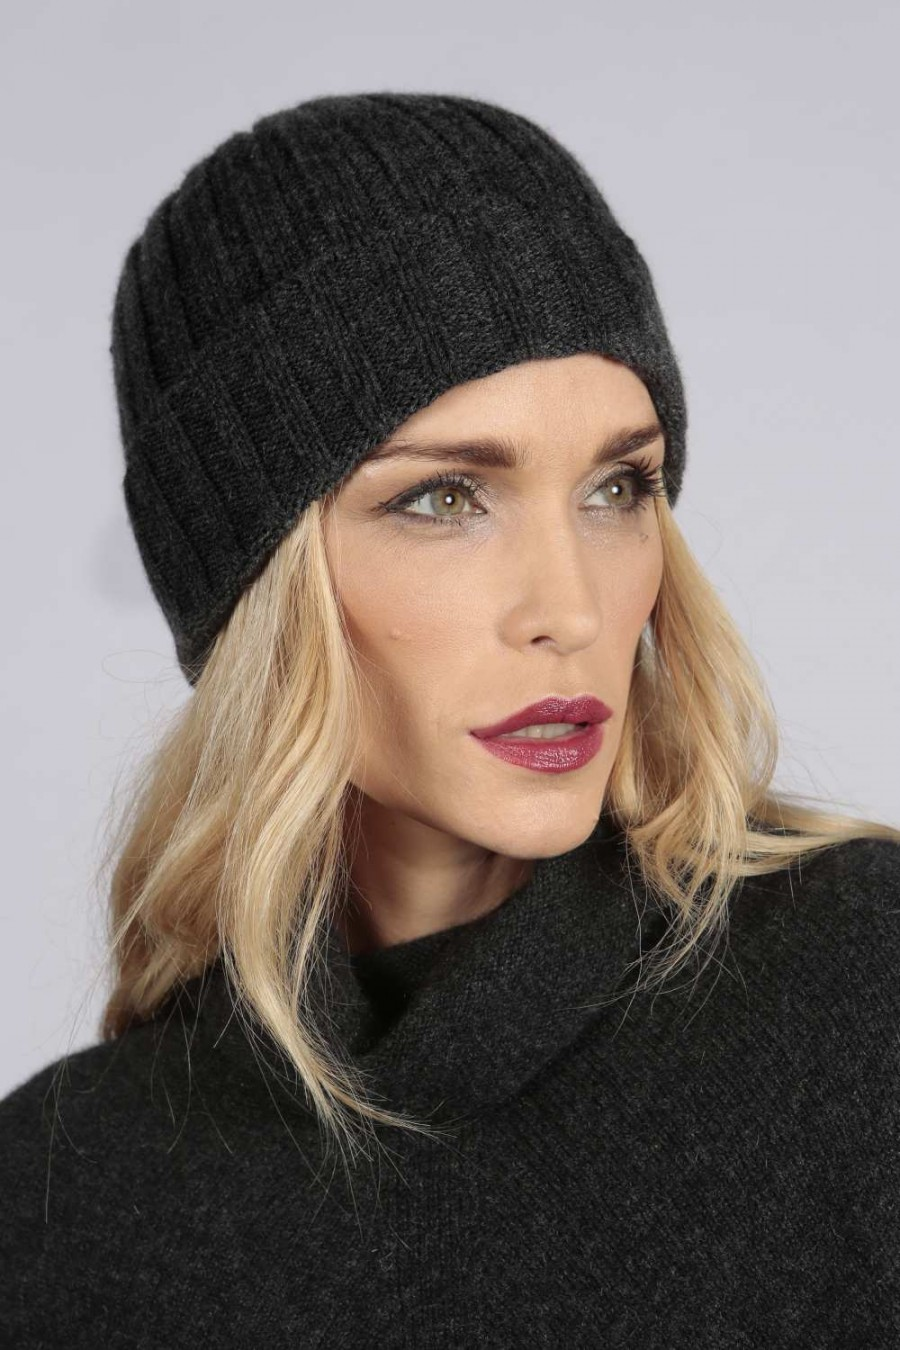 de3bb4f340846 Charcoal grey pure cashmere wide ribbed fisherman beanie hat | Italy in  Cashmere US